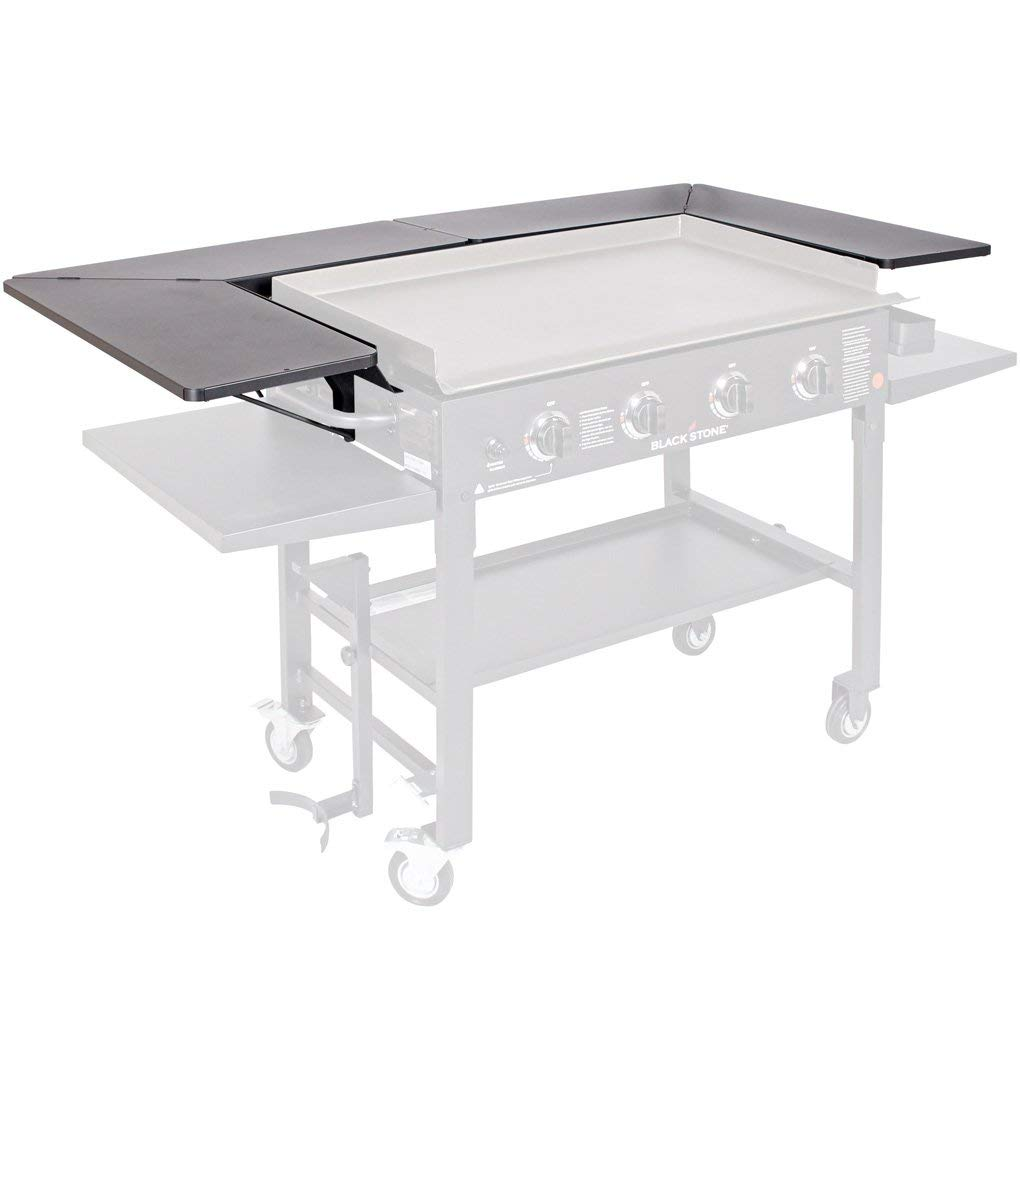 Blackstone Signature Accessories - 36 Inch Griddle Surround Table Accessory - Powder Coated Steel (Grill not included and Doesnt fit the 36in Griddle with New Rear Grease Model) (Renewed)